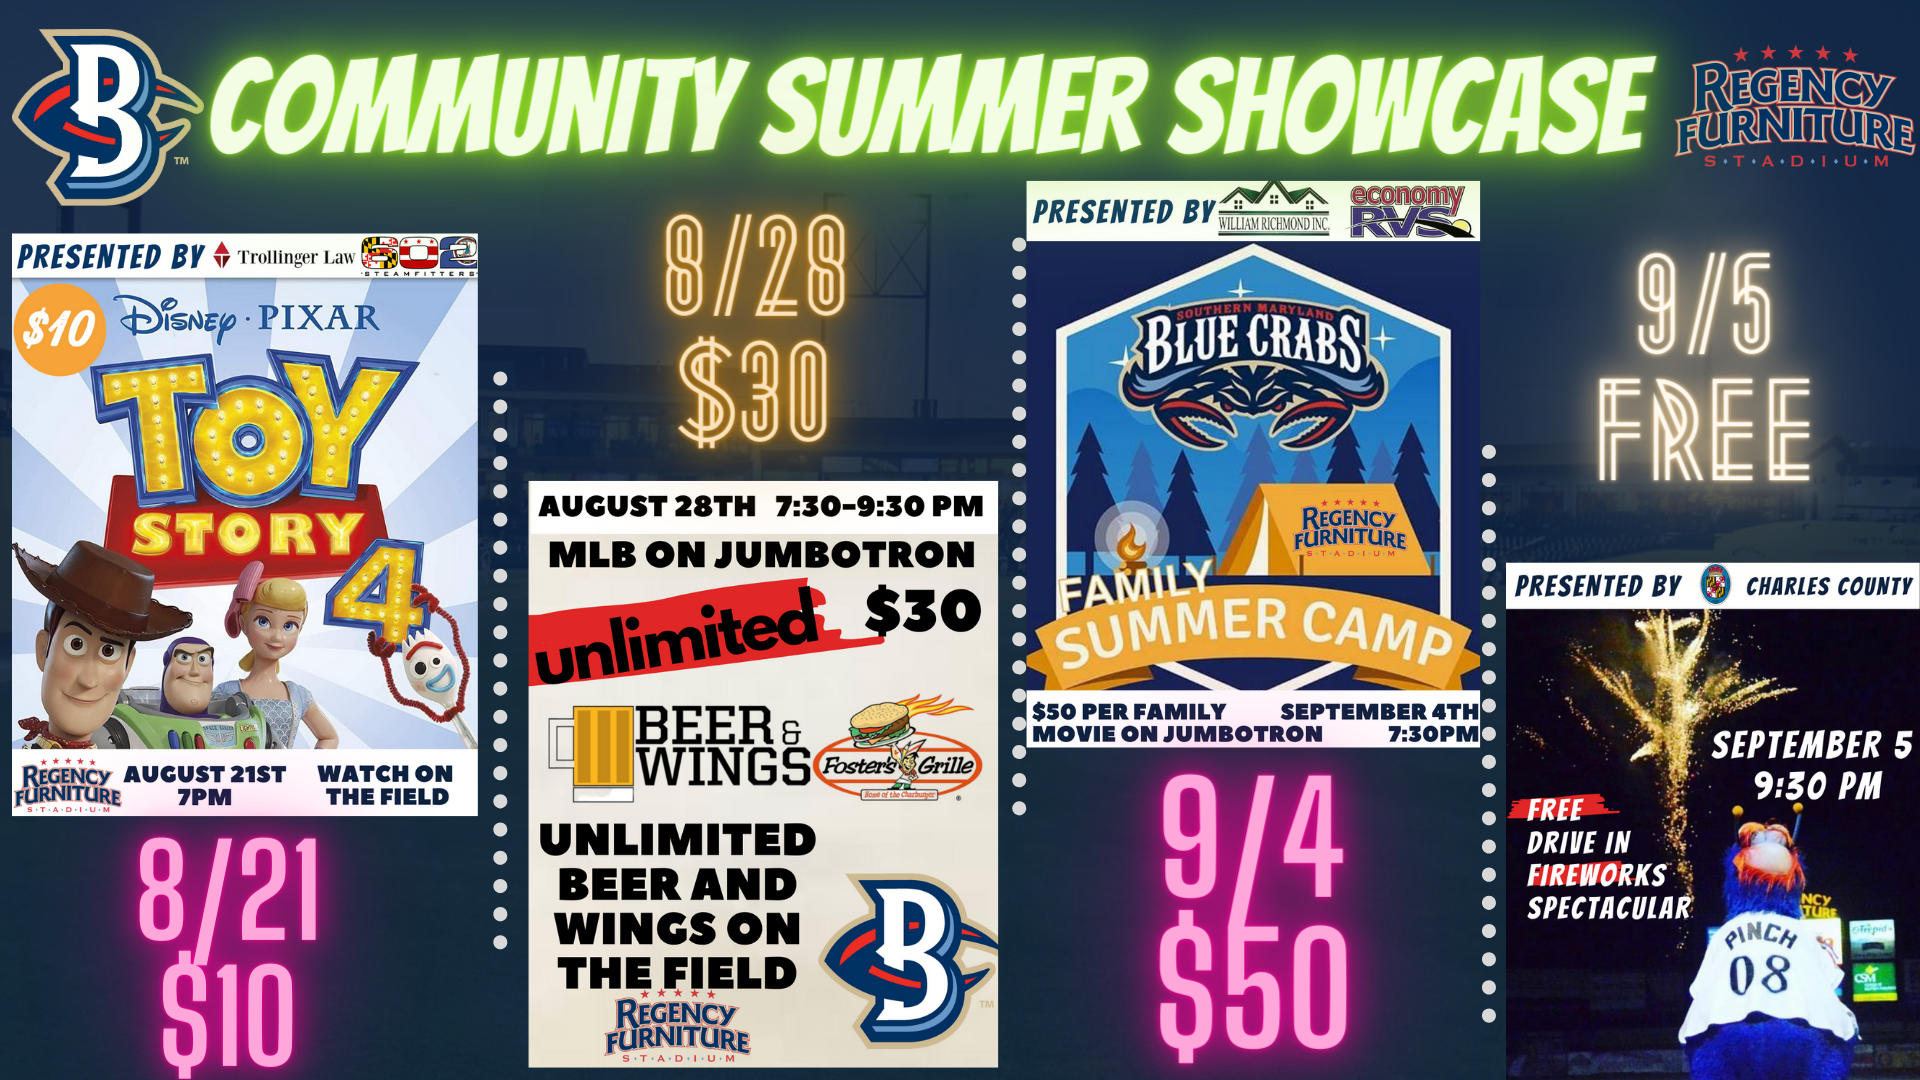 Blue Crabs Announce More Community Summer Showcase Events